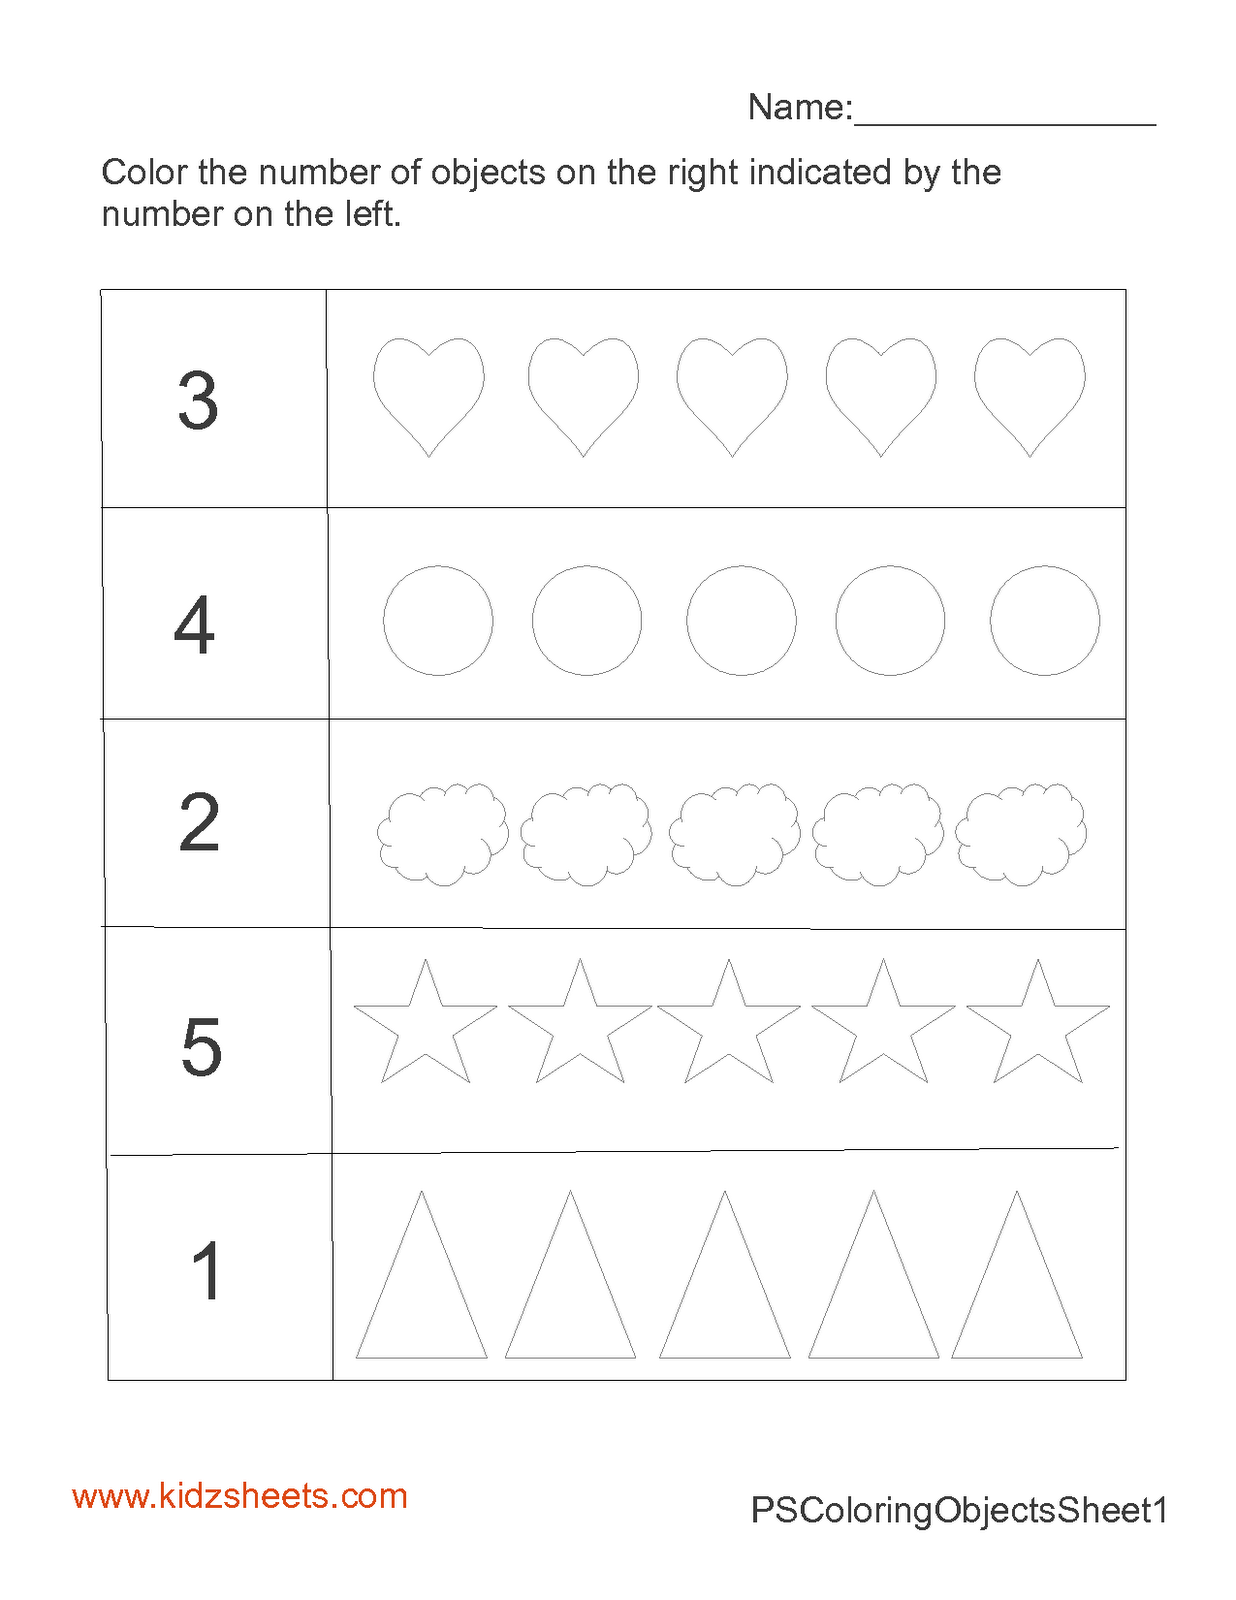 kindergarten counting coloring pages - photo#16